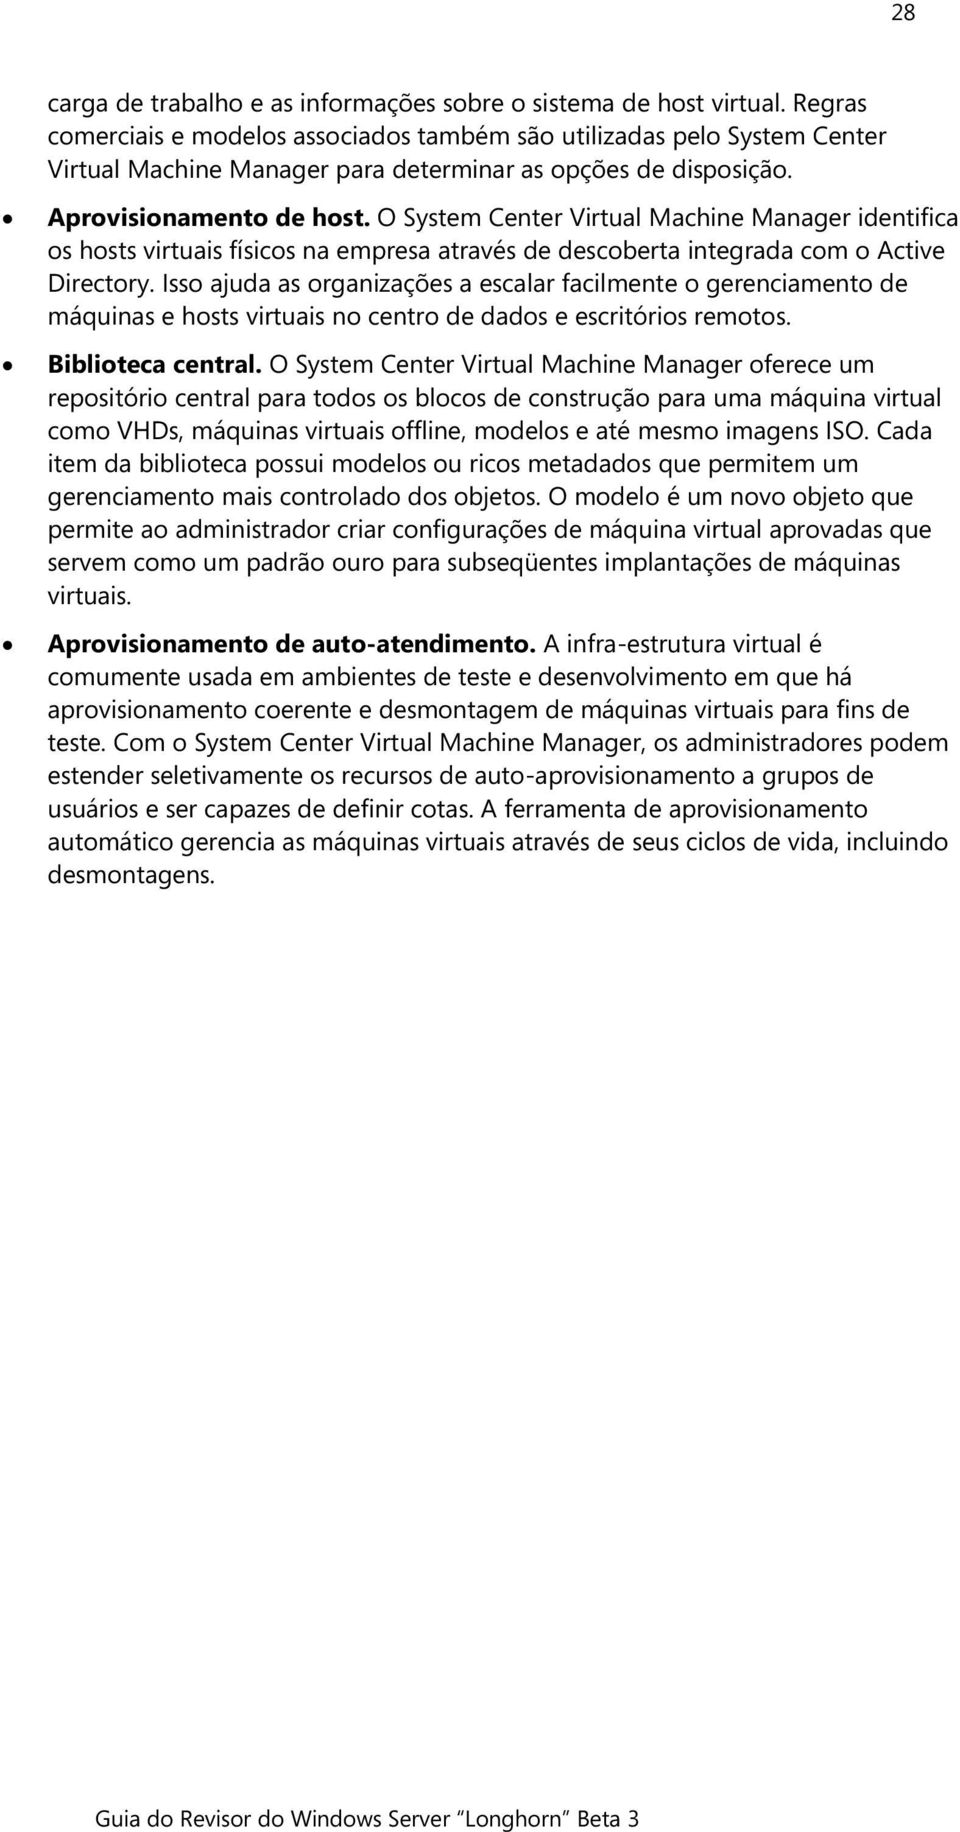 O System Center Virtual Machine Manager identifica os hosts virtuais físicos na empresa através de descoberta integrada com o Active Directory.